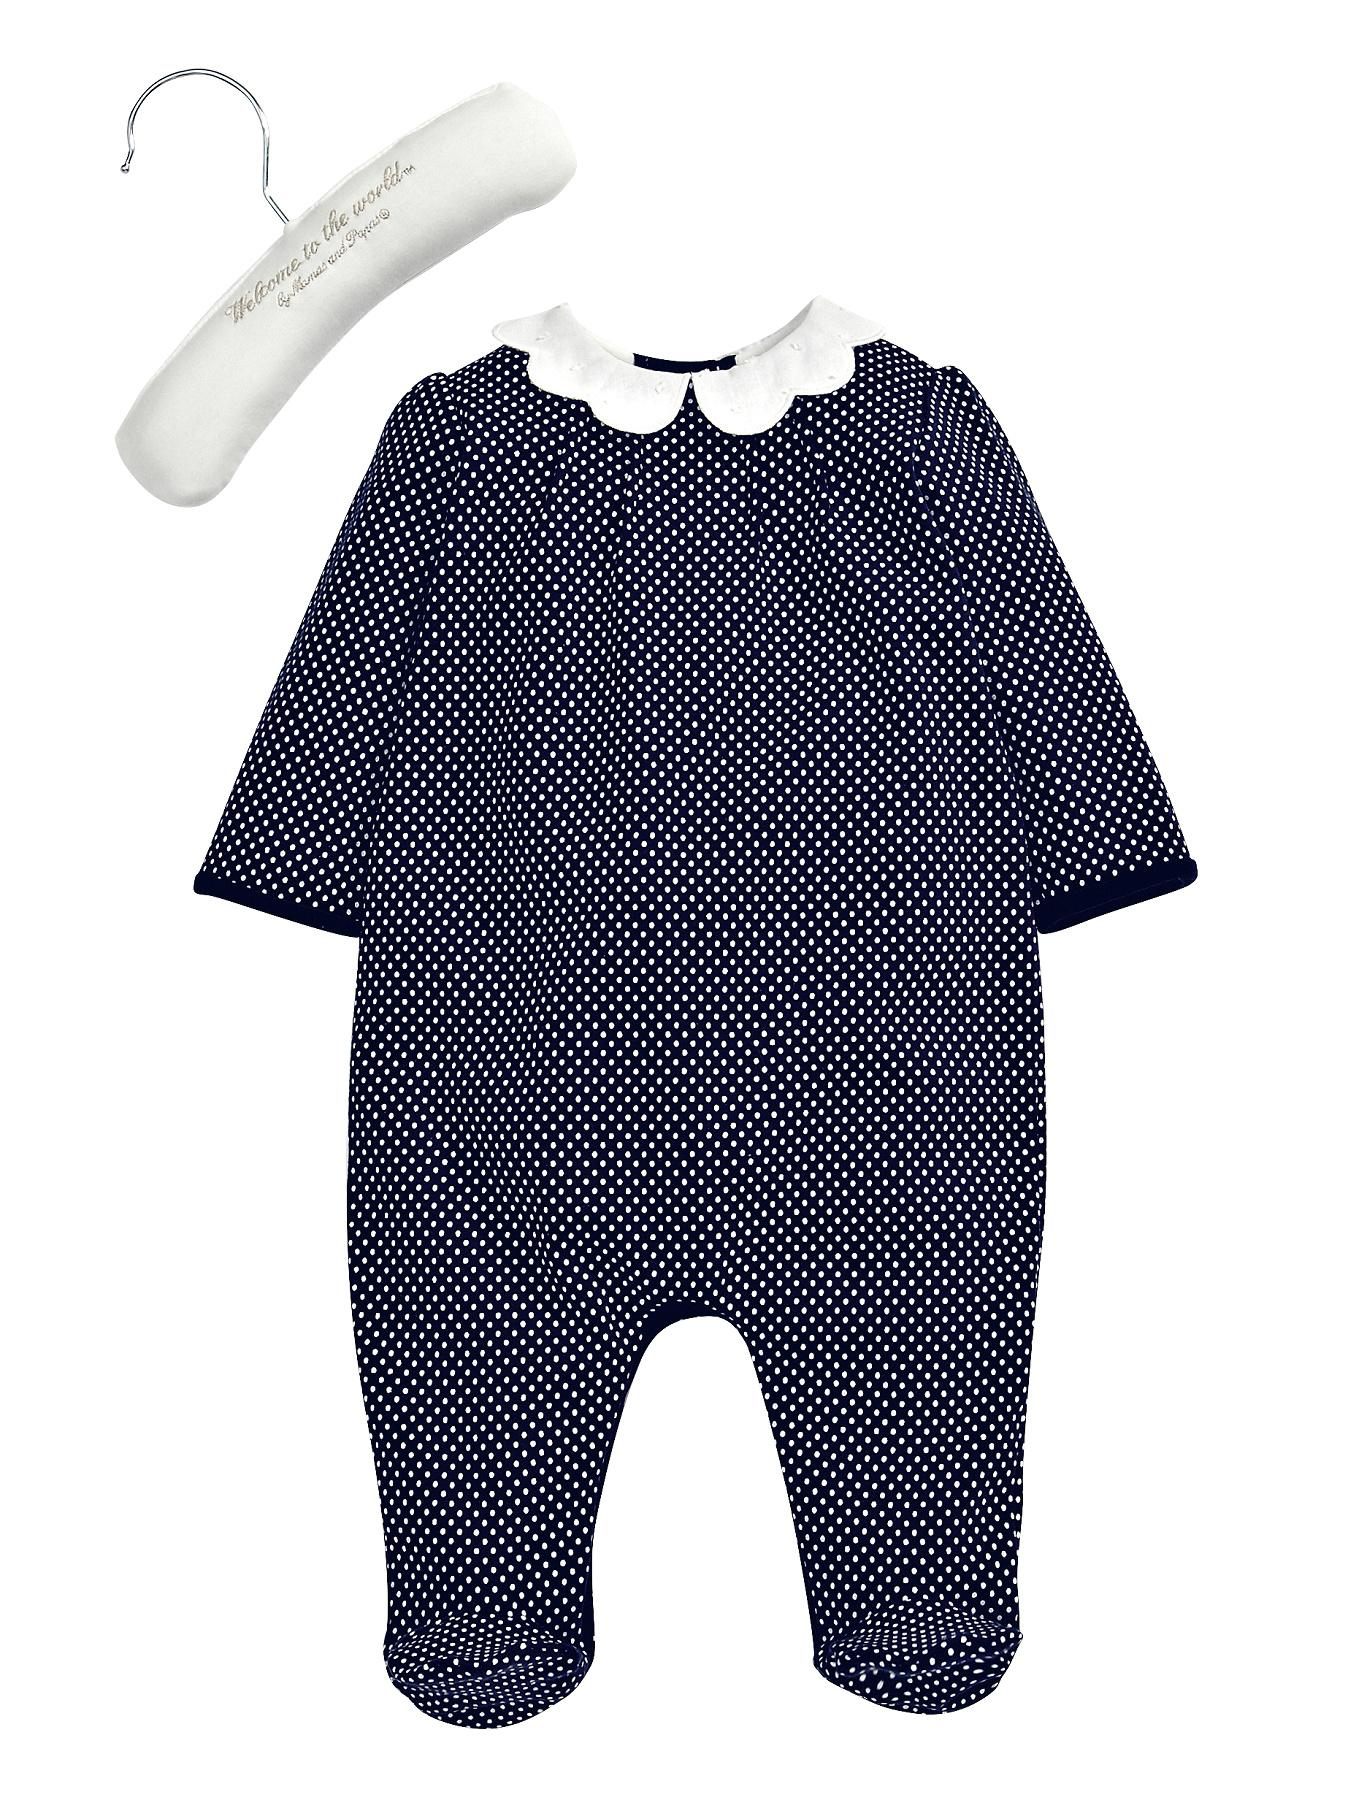 Mamas & Papas Scallop Bib All-in-One - Navy, Navy